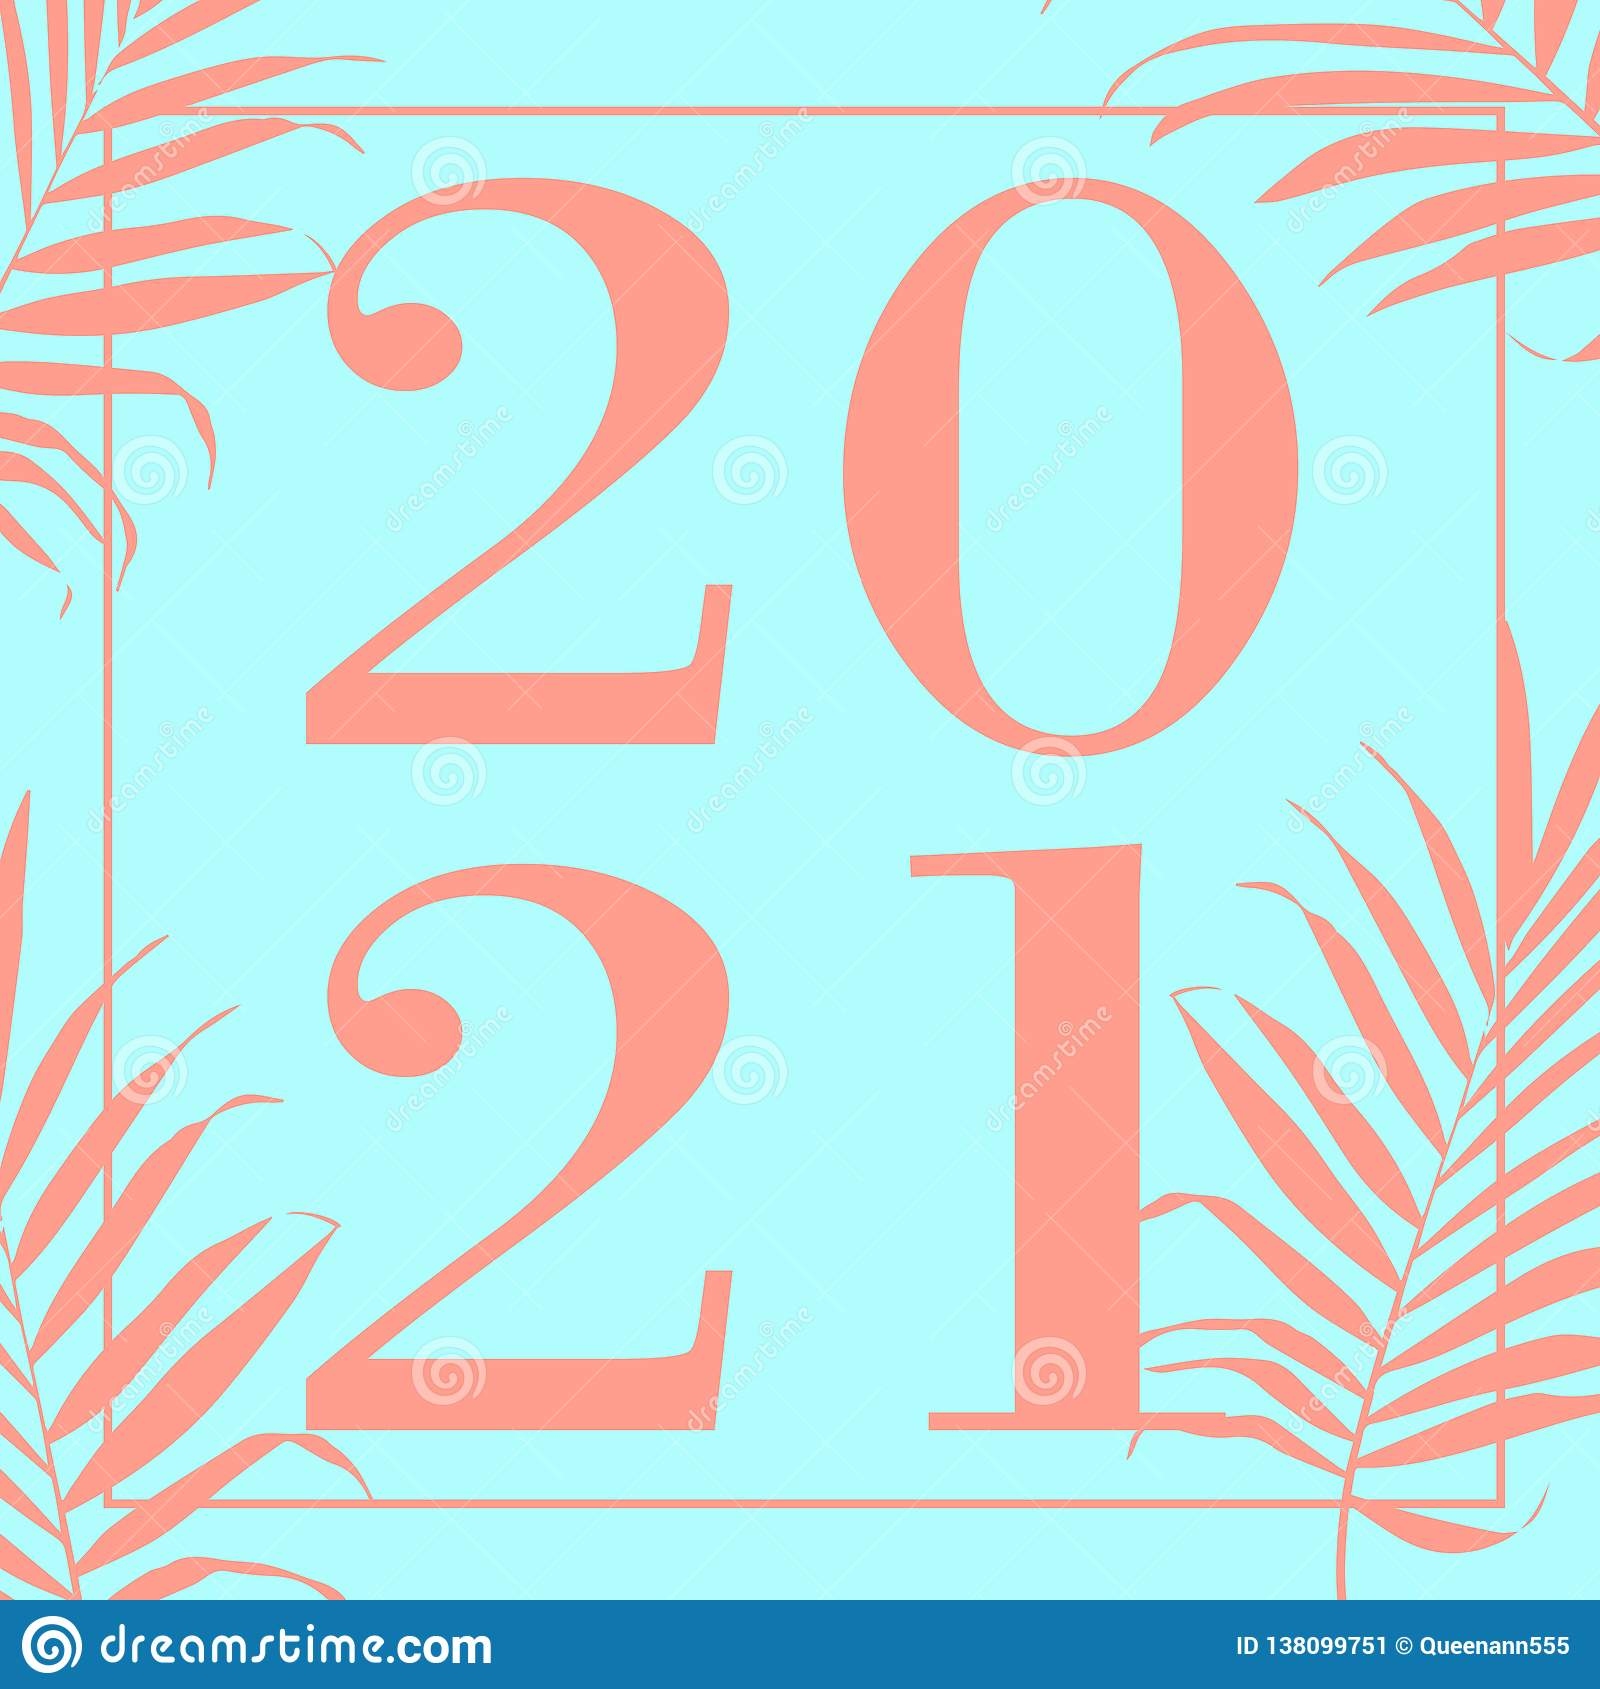 Happy New Year 2021 Text Design Vector Illustration ...